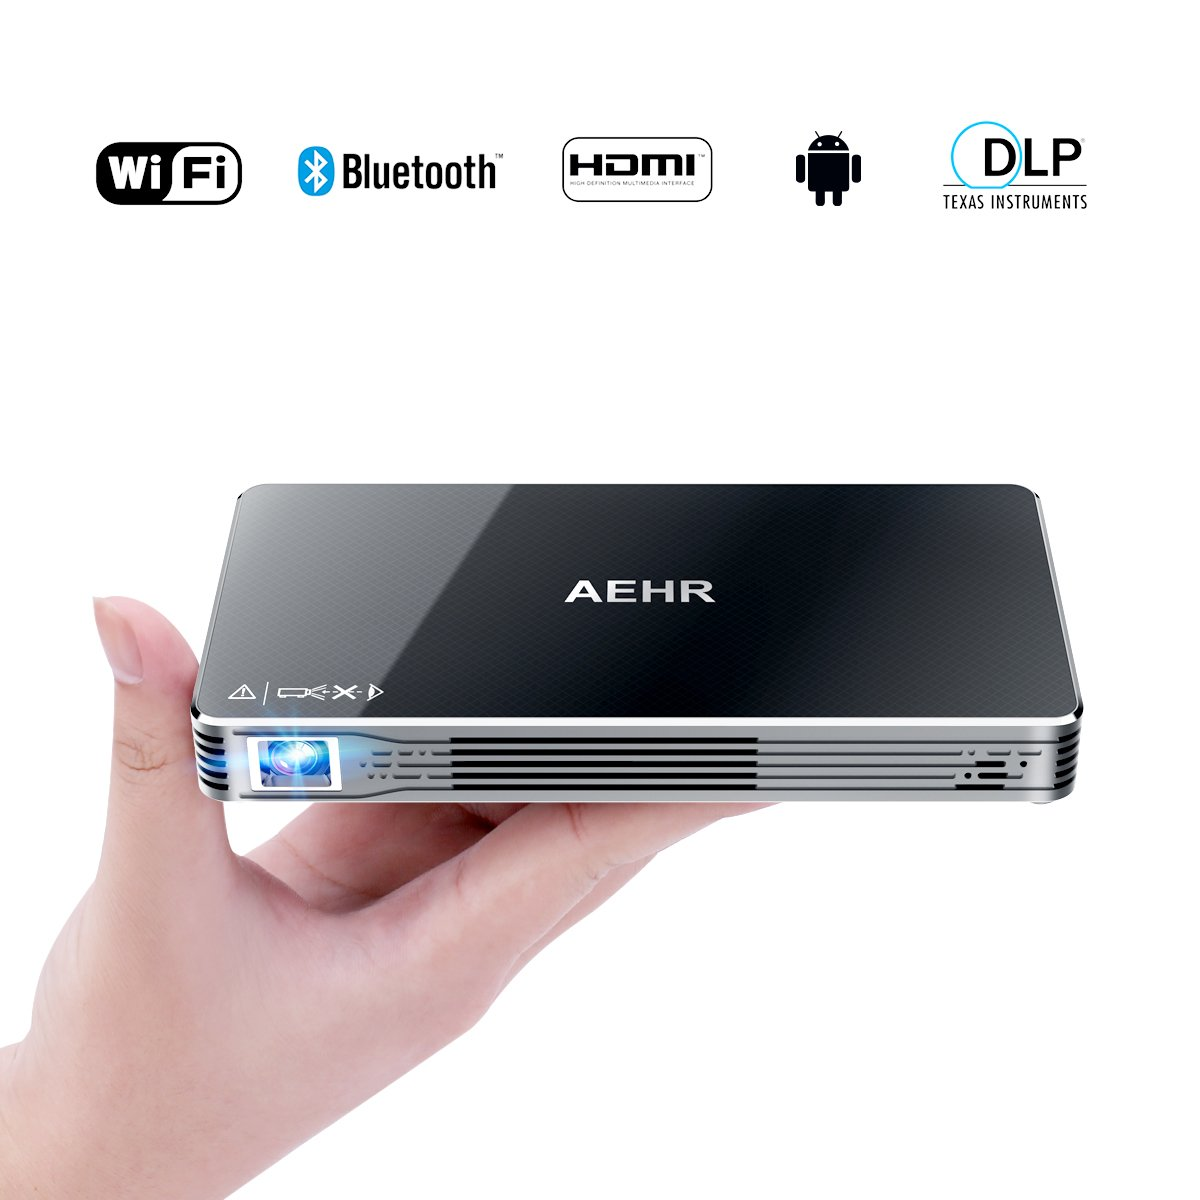 Mini Projector Portable Pico Video Projector for iPhone and Andriod phone,with 120 Inch Display,HD Home Theater Family Cinema,Support Wifi/HDMI/Bluetooth/USB/TF card/Audio Cable by AEHR